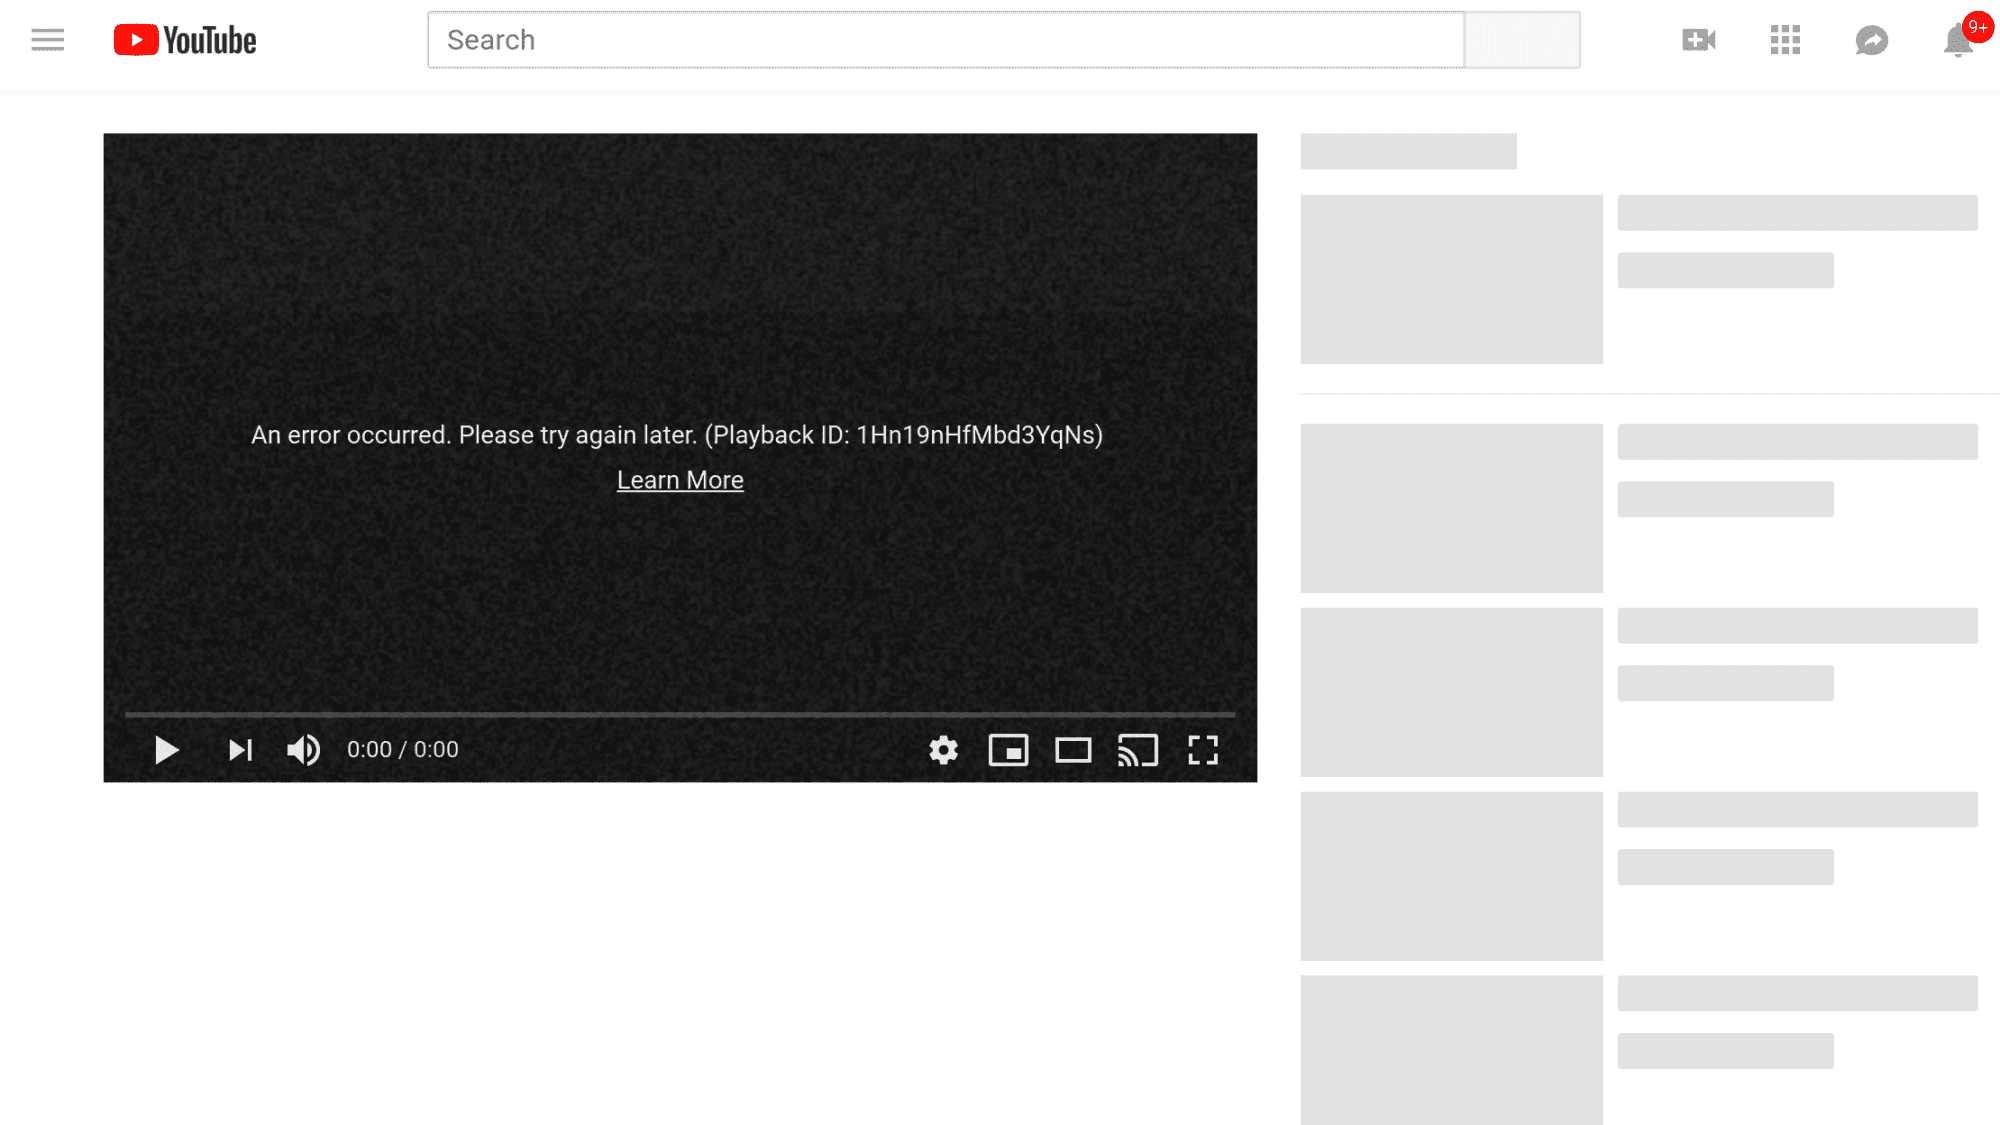 [Updated] It's Not You, YouTube Hit With Major Outage